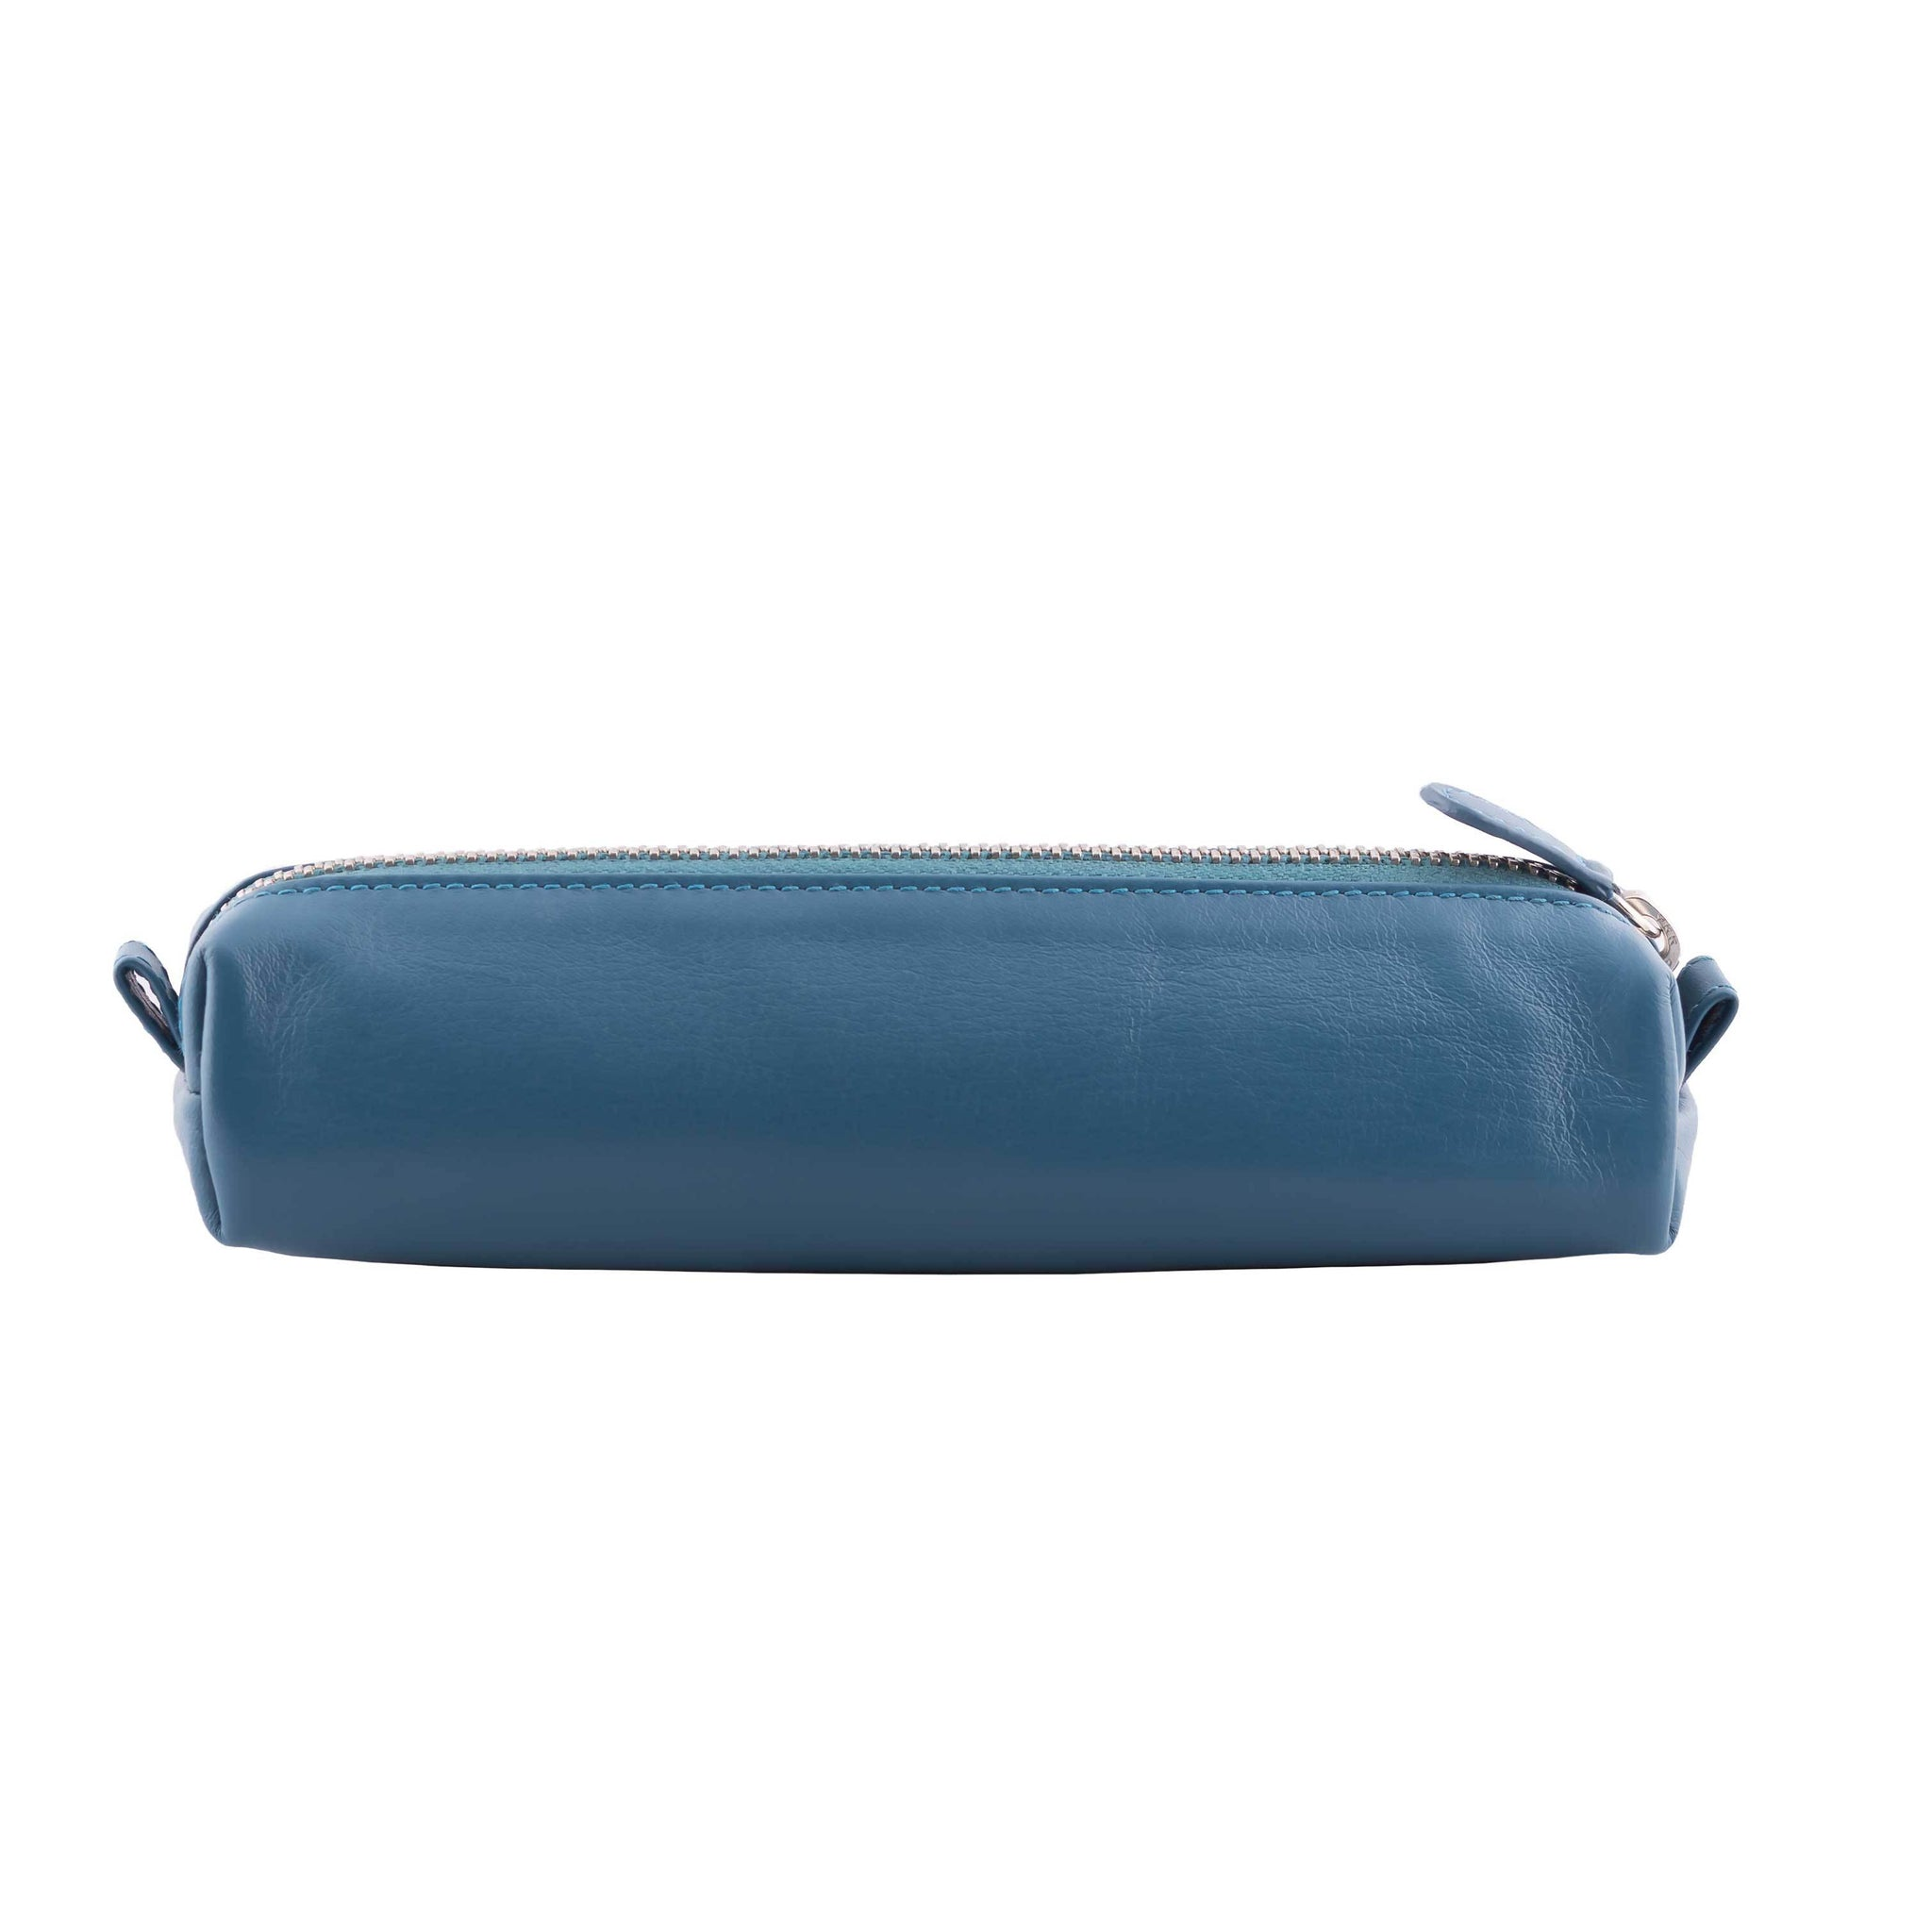 Multi-Purpose Zippered Leather Pen Pencil Case in Various Colors - Blue